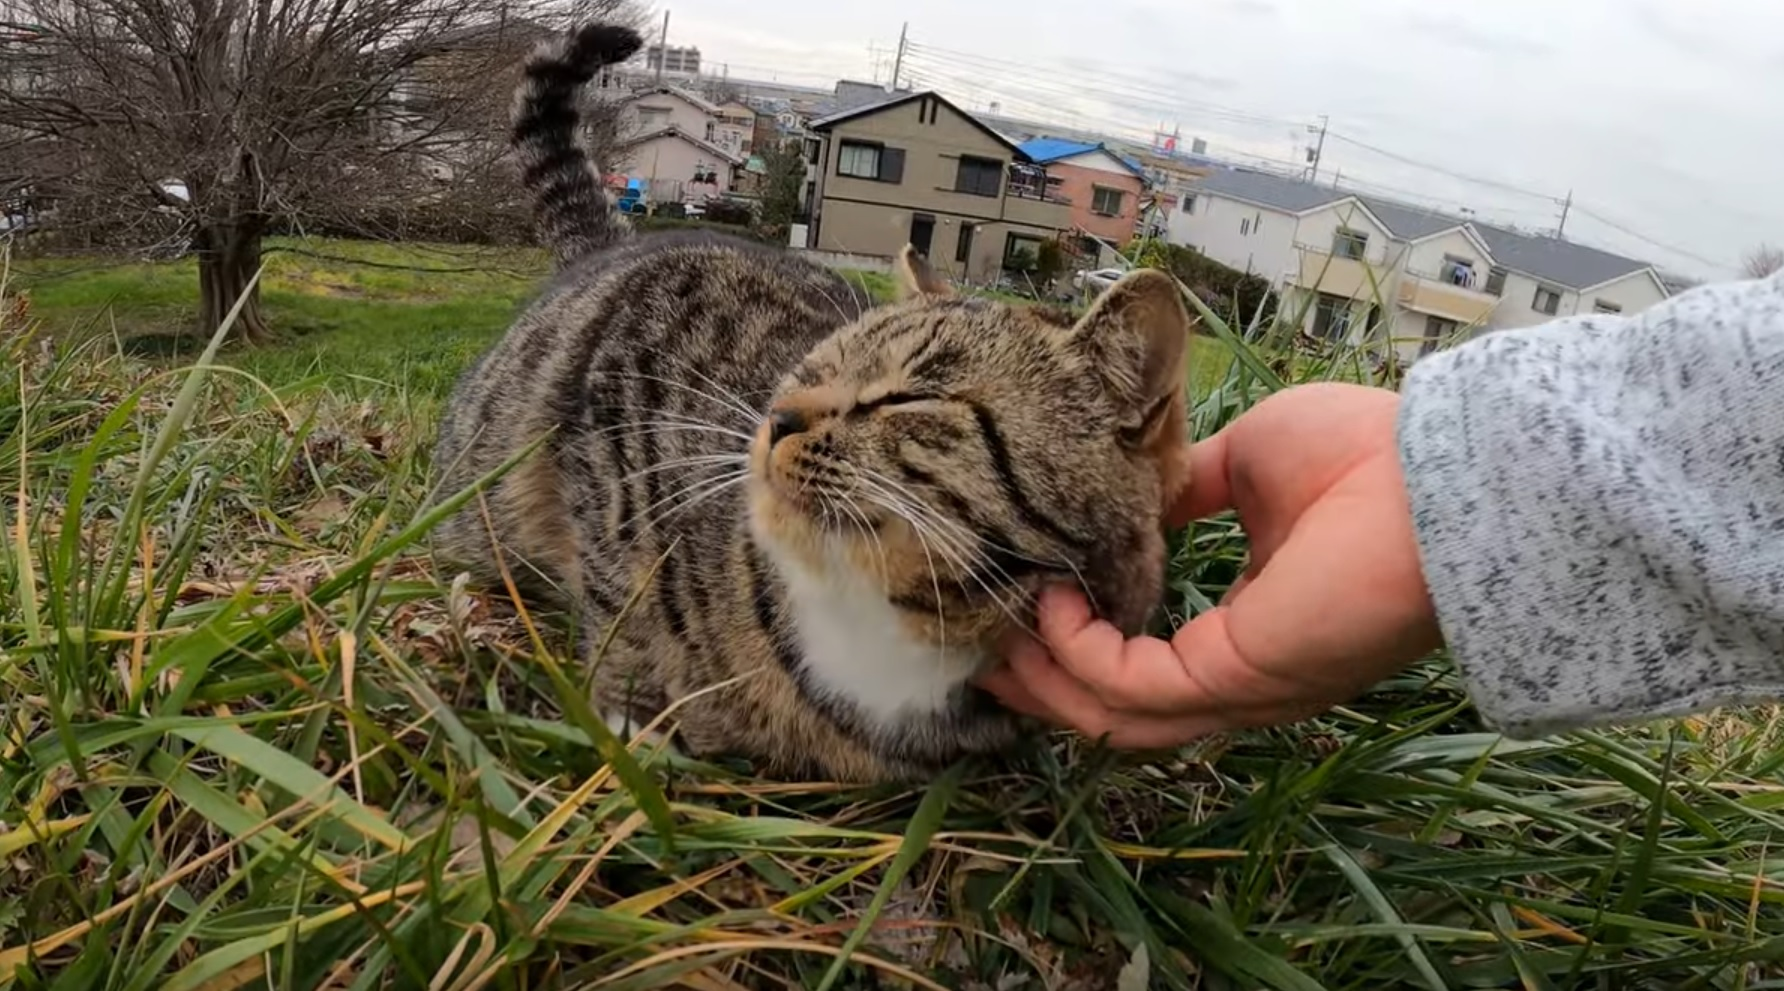 Friendly Cat Enjoys Being Pet